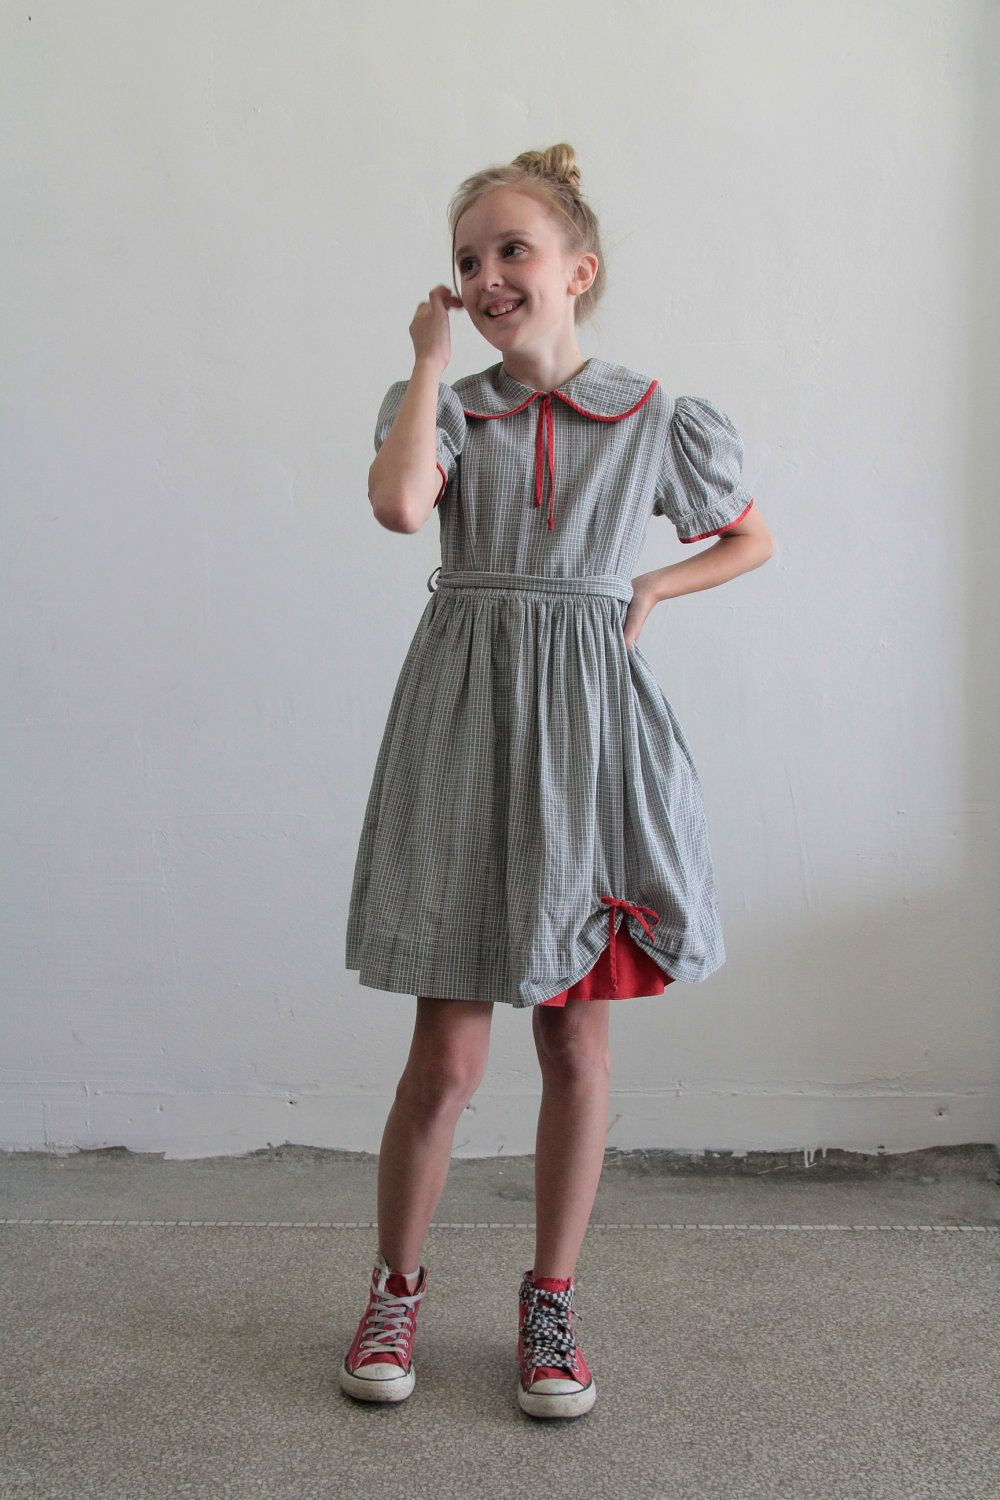 S little girl dress plaid grey and white red trim mid